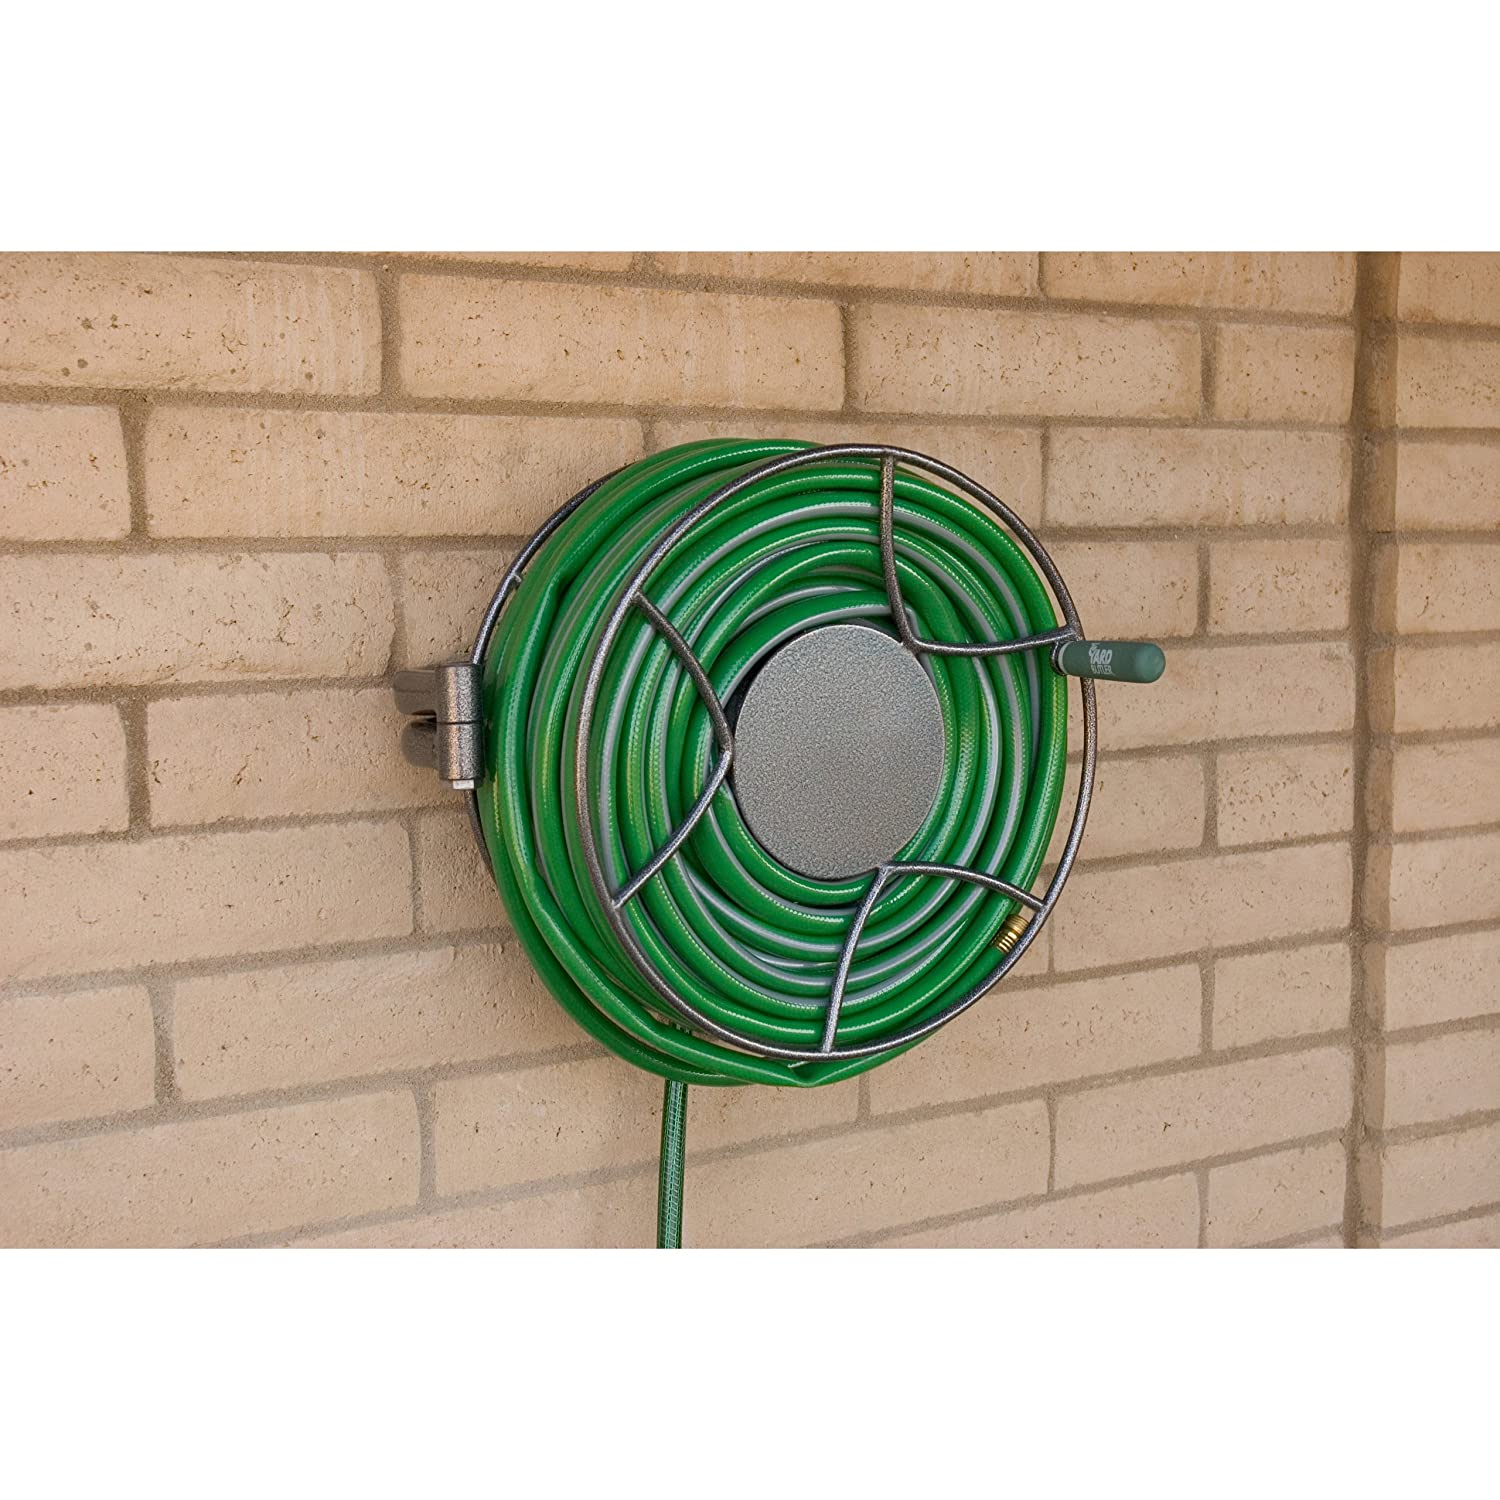 Amazon.com : Yard Butler SRWM 180 Wall Mounted Hose Reel : Garden Hose Reels  : Patio, Lawn U0026 Garden